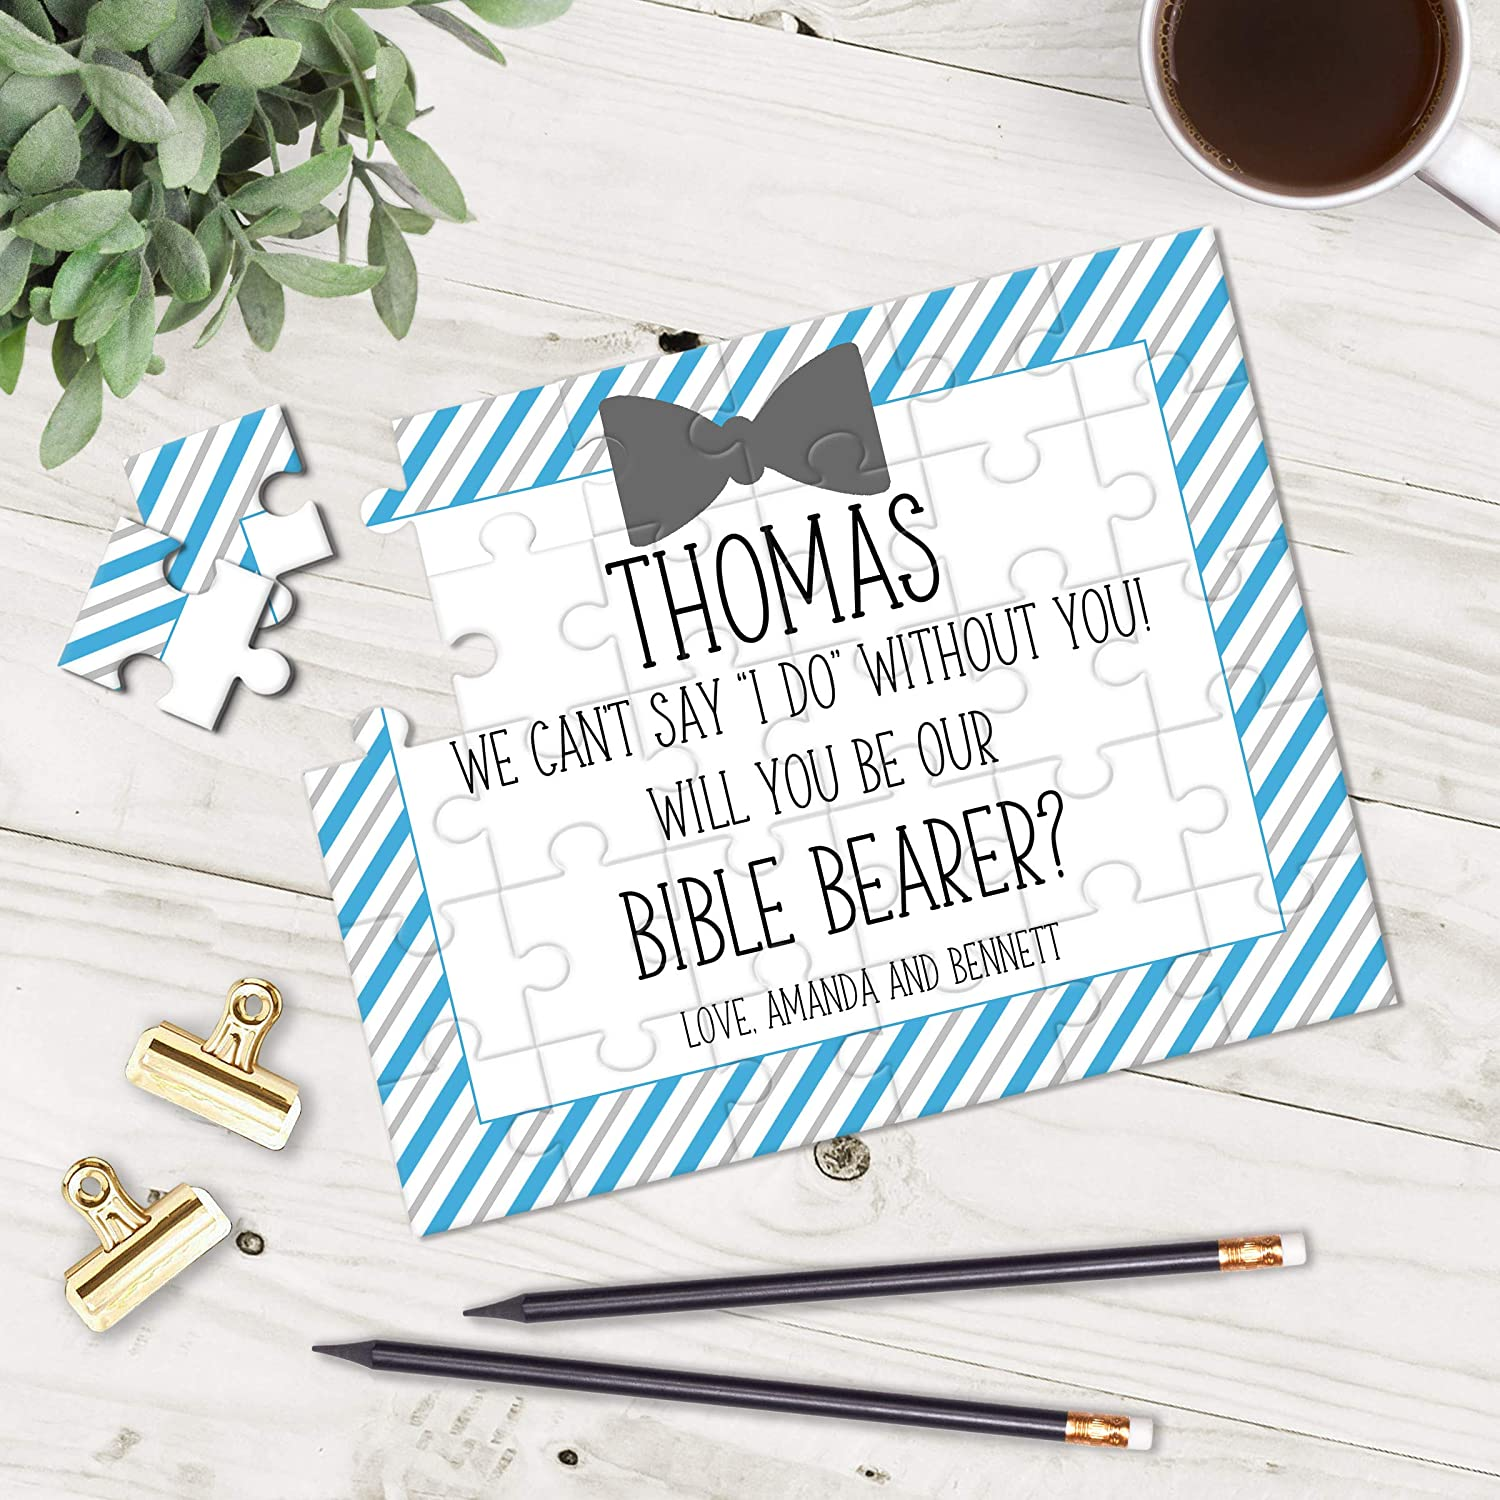 Personalized Bible Bearer Puzzle - Puzzle Proposal - Asking Ring Bearer- Wedding Announcement - CUSTOM